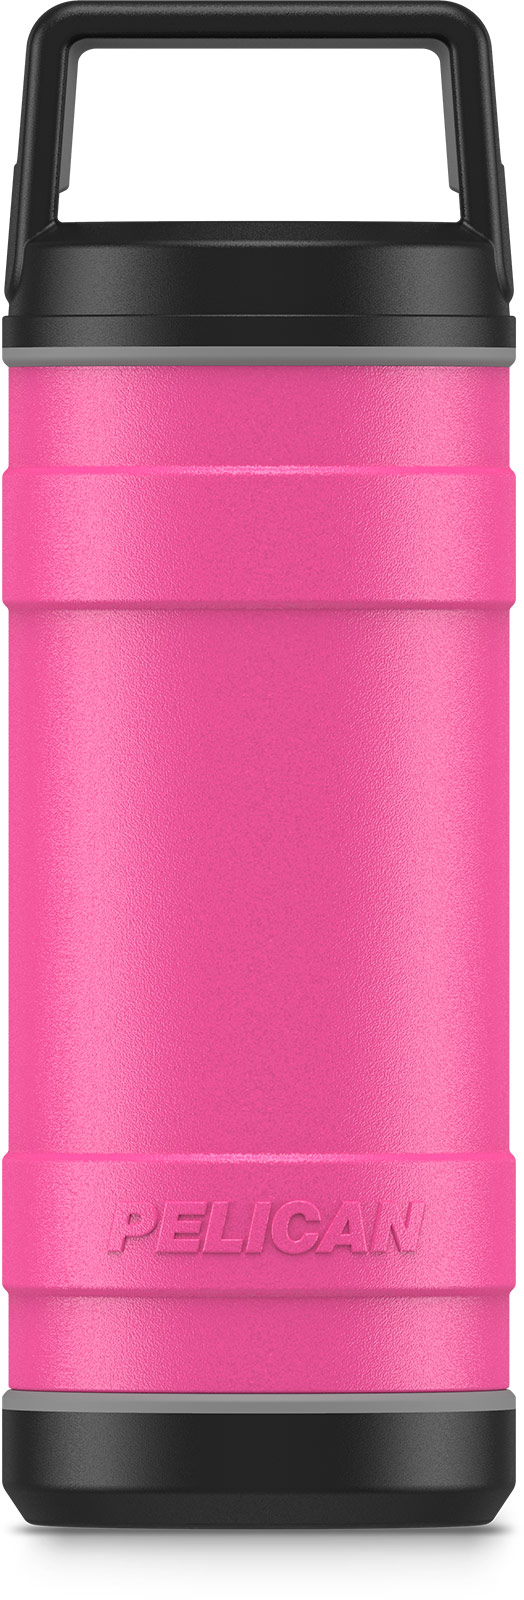 pelican pink 18oz stainess steel bottle